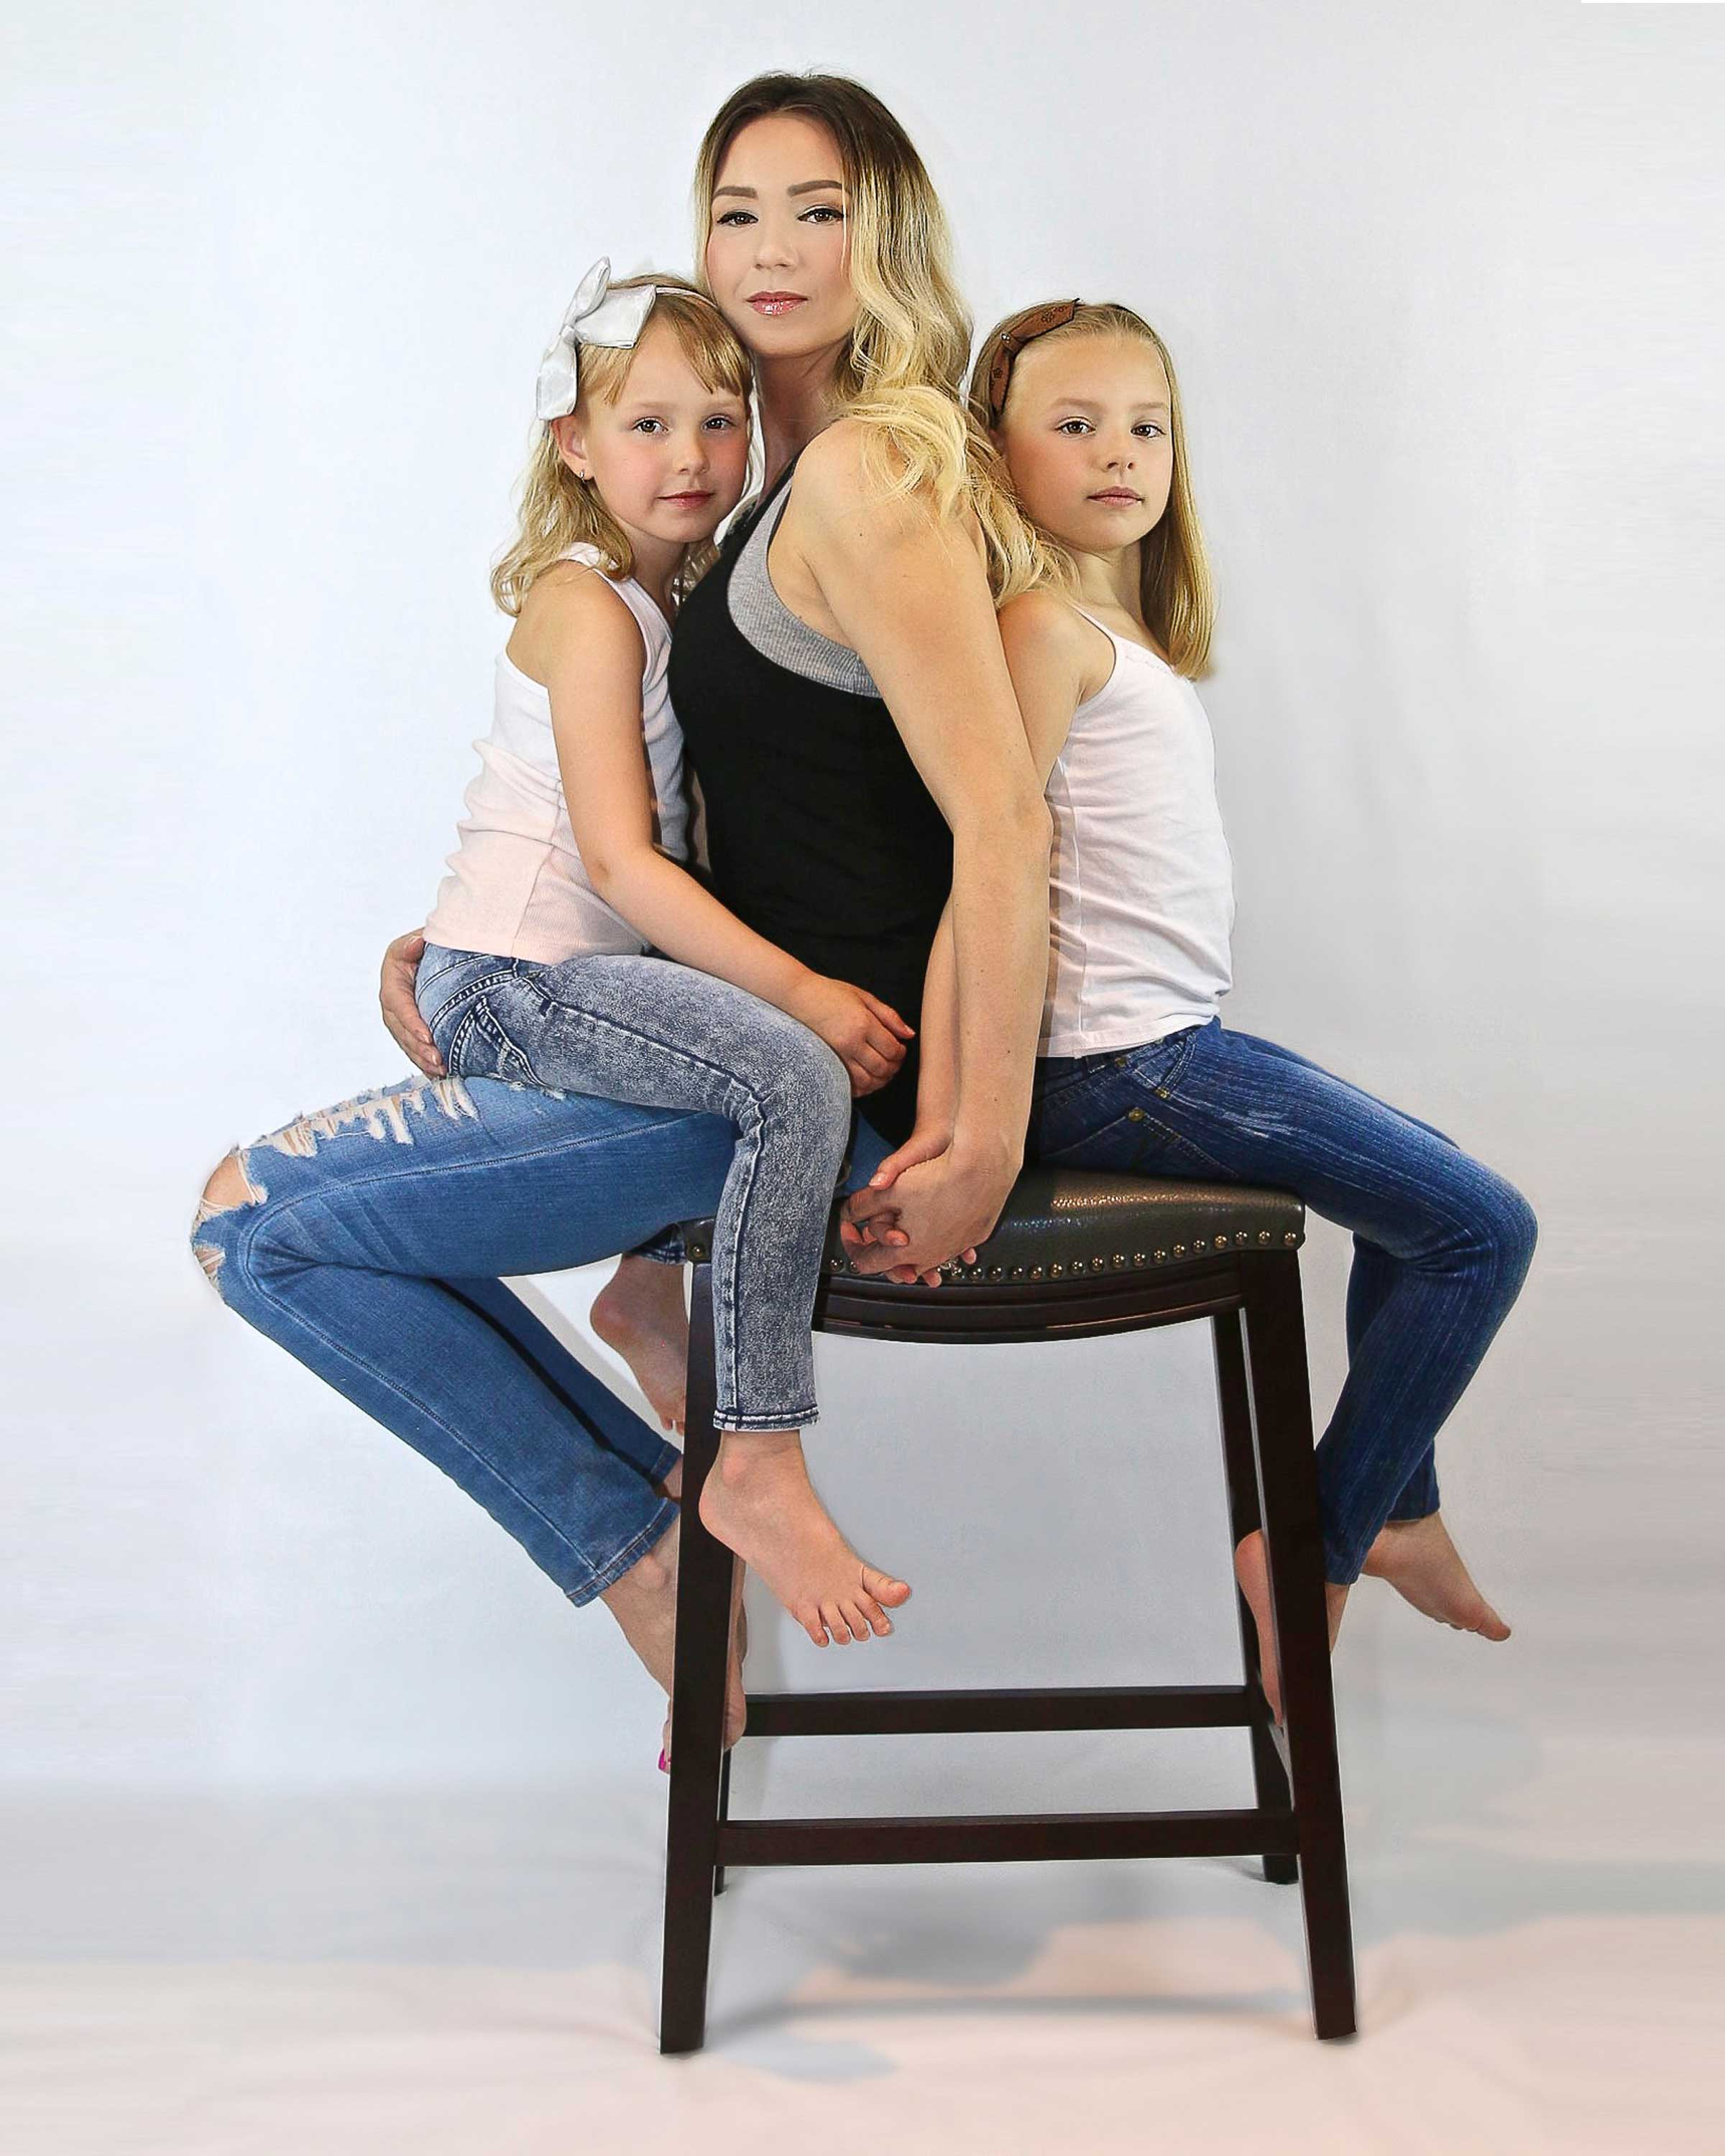 Irene-Lay-Photography-Mother-Daughter-Portraits